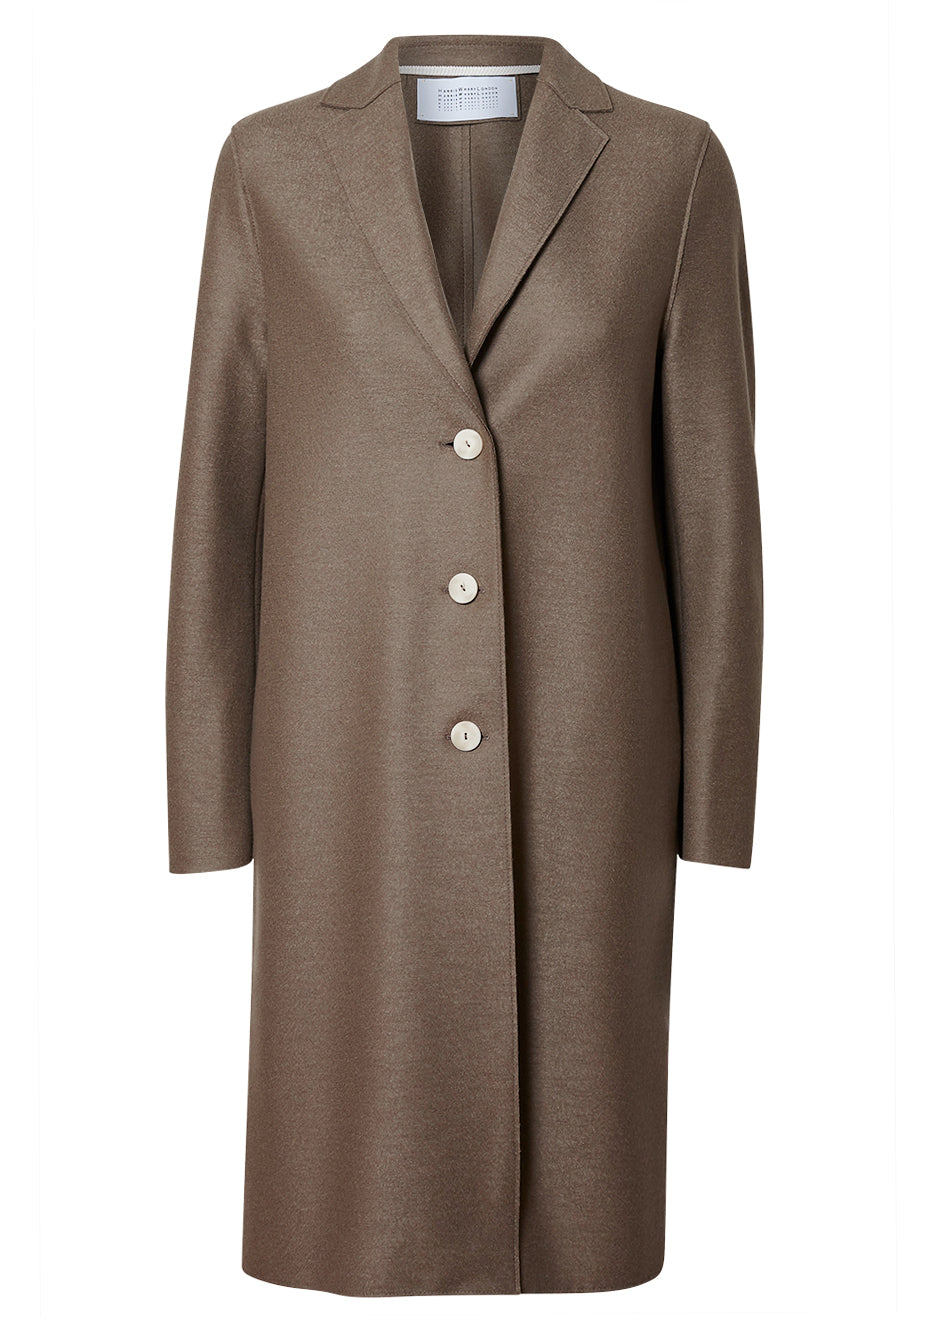 Taupe Light Pressed Wool Overcoat